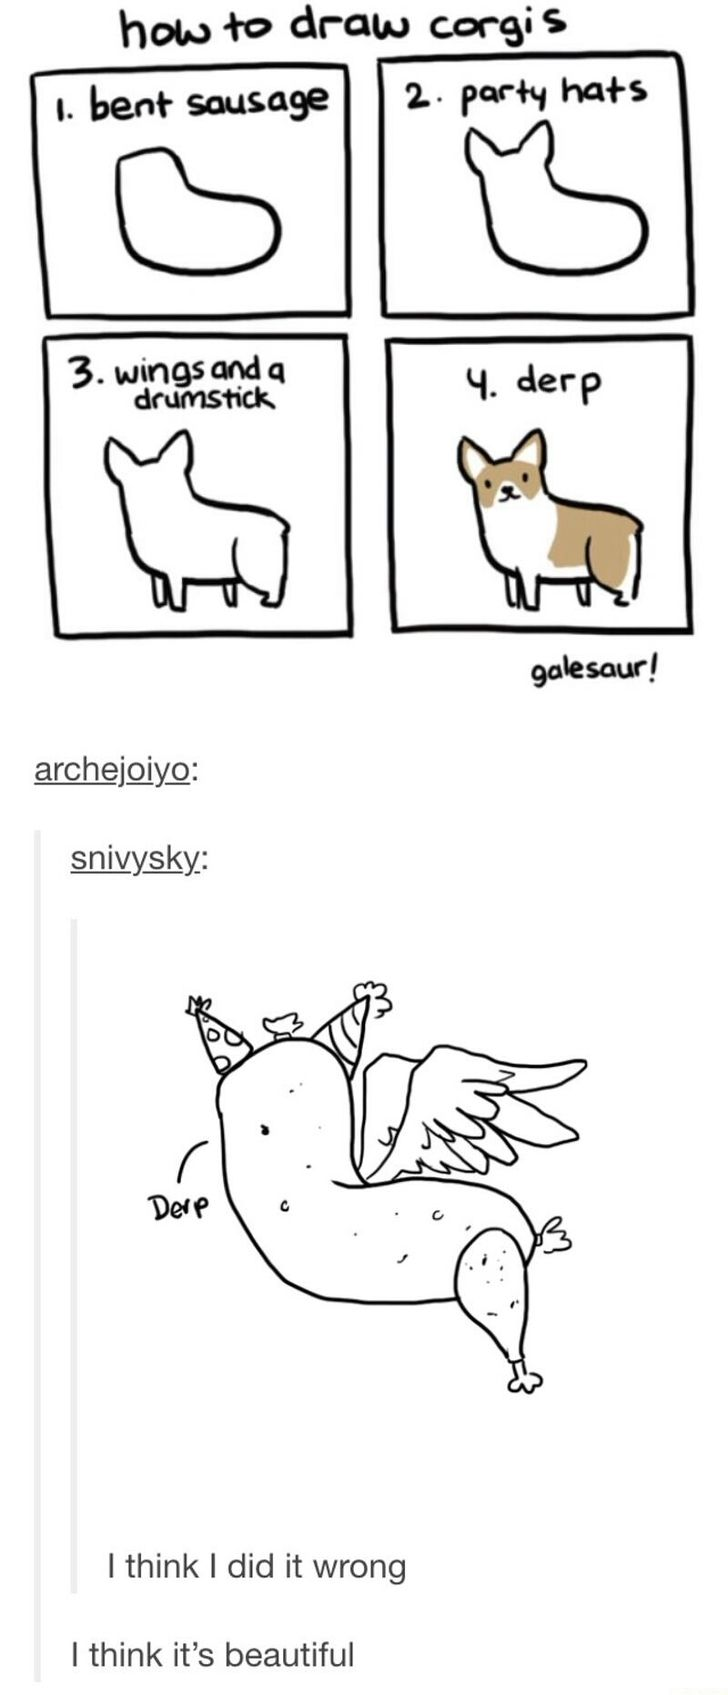 How To Draw Corgis Funny Drawings Corgi Memes Funny Pictures